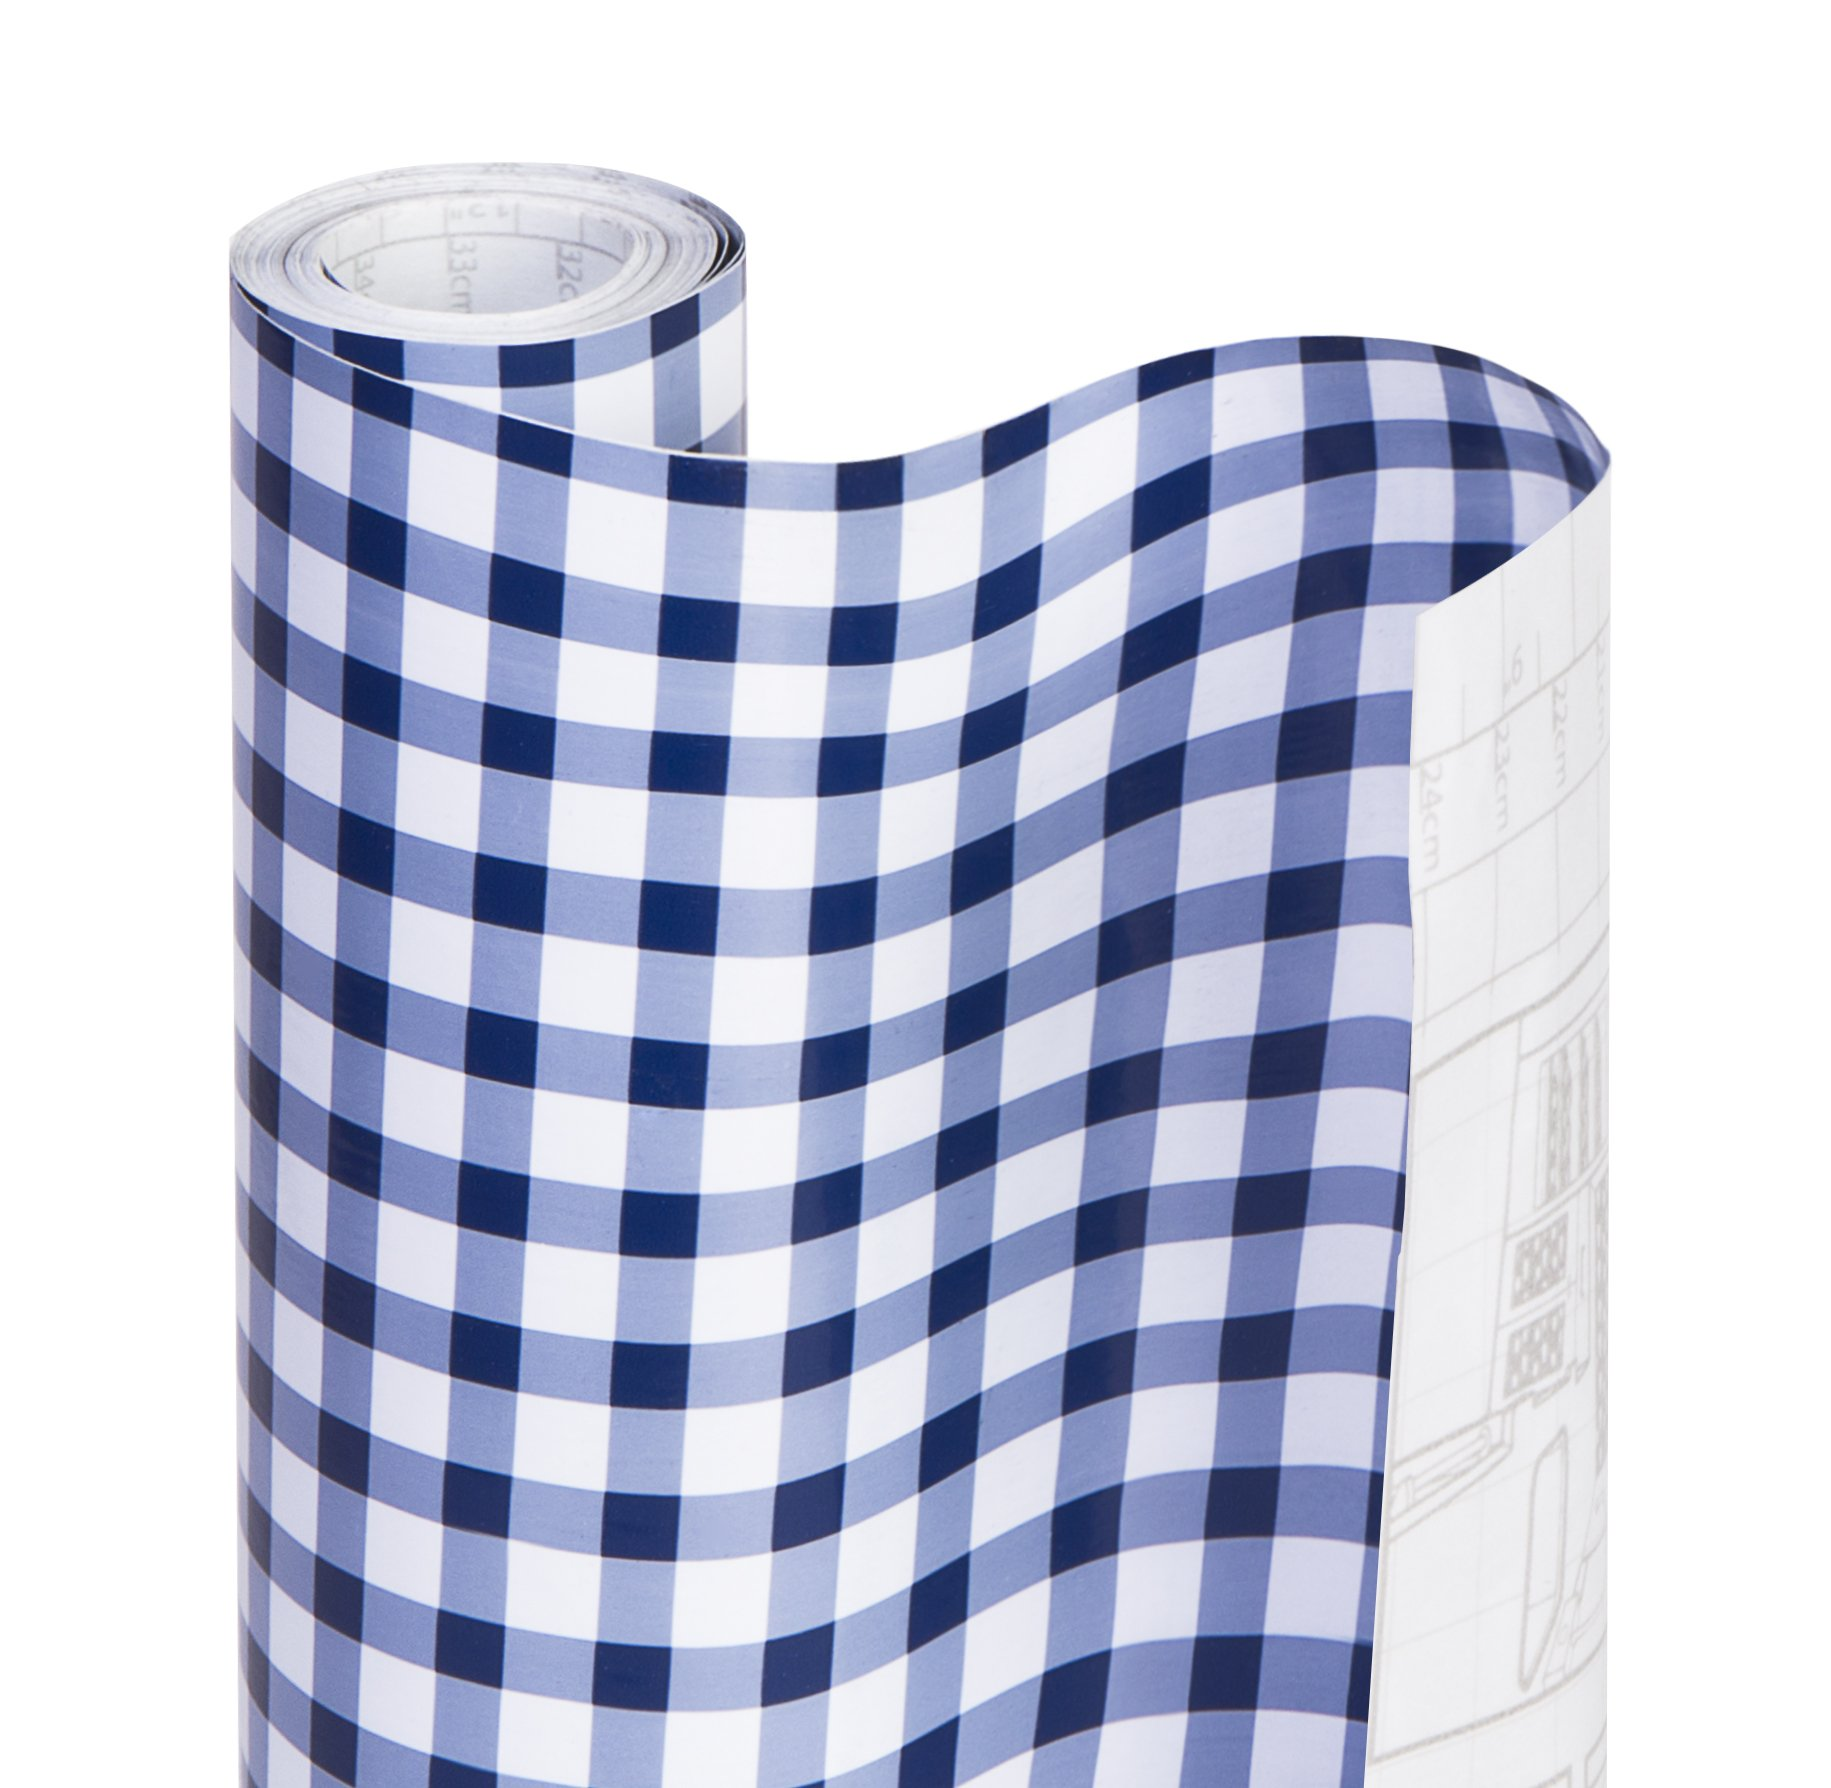 DAZZ 8607201 Navy Blue Gingham Adhesive Decorative Shelf Liner